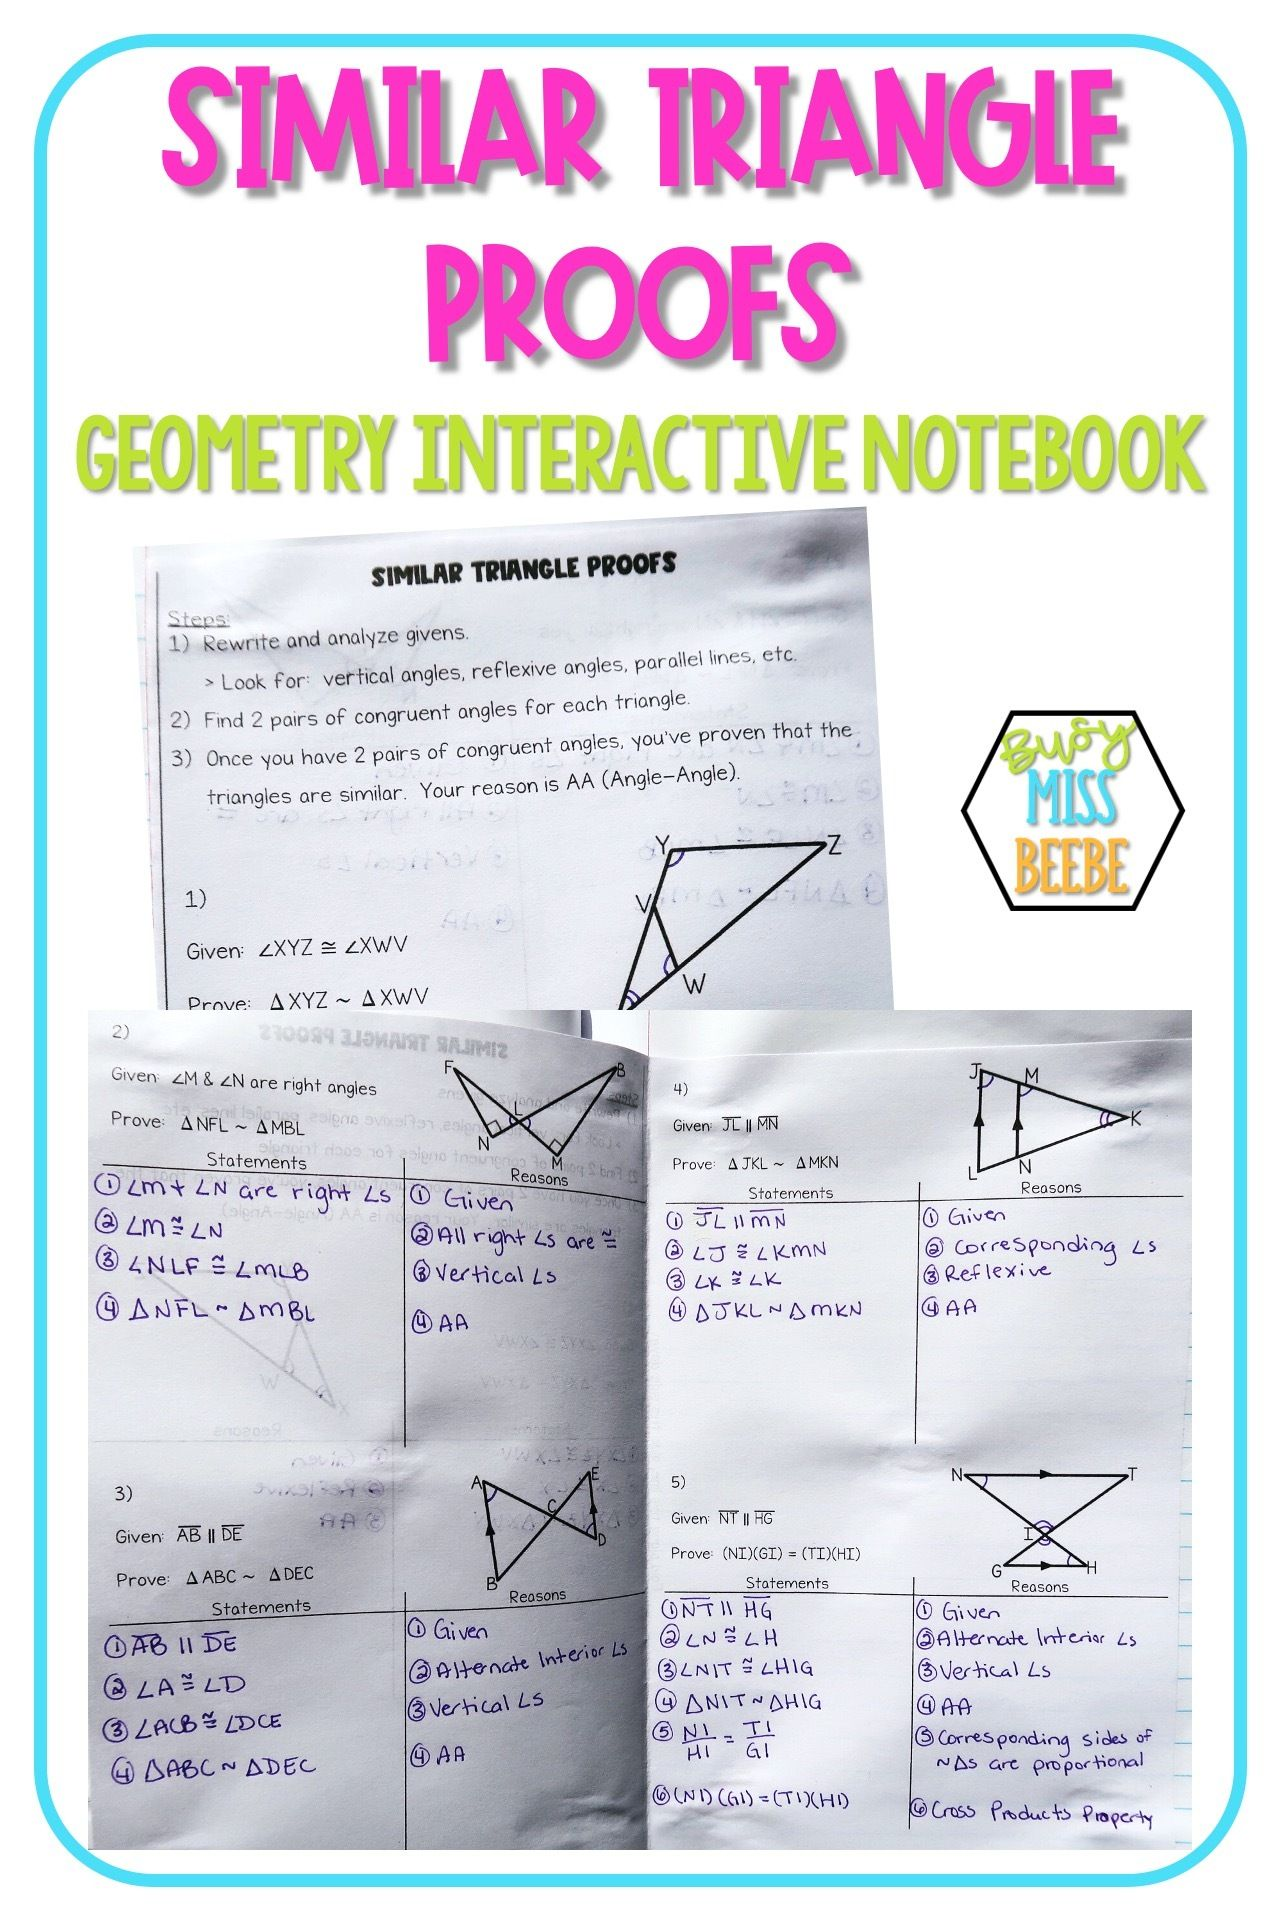 Geometry Interactive Notebook Similarity Busy Miss Beebe In 2020 Geometry Interactive Notebook Interactive Notebooks Teaching Geometry